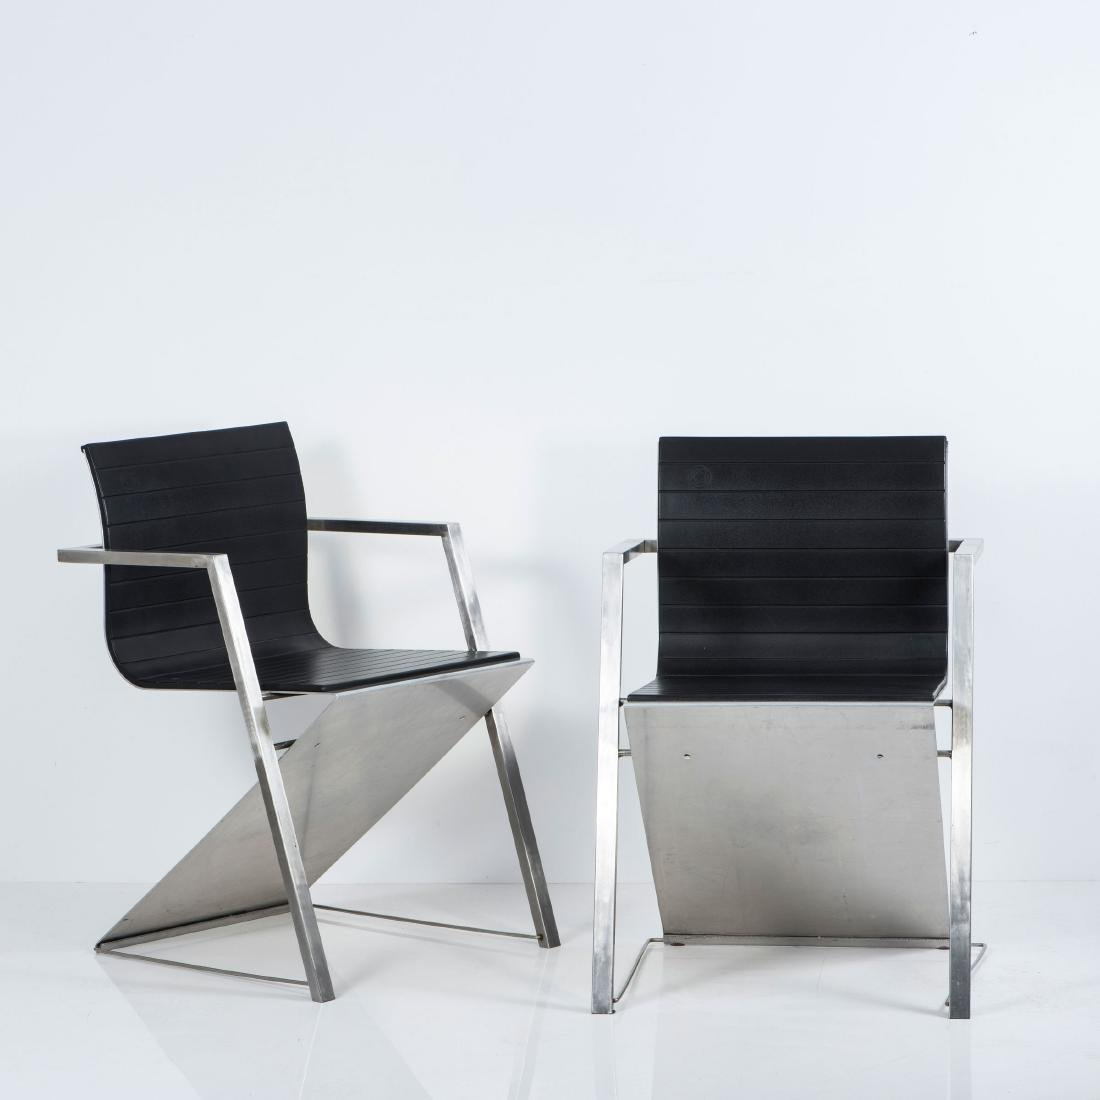 Two 'd8 Documenta' armchairs, 1987 - 2